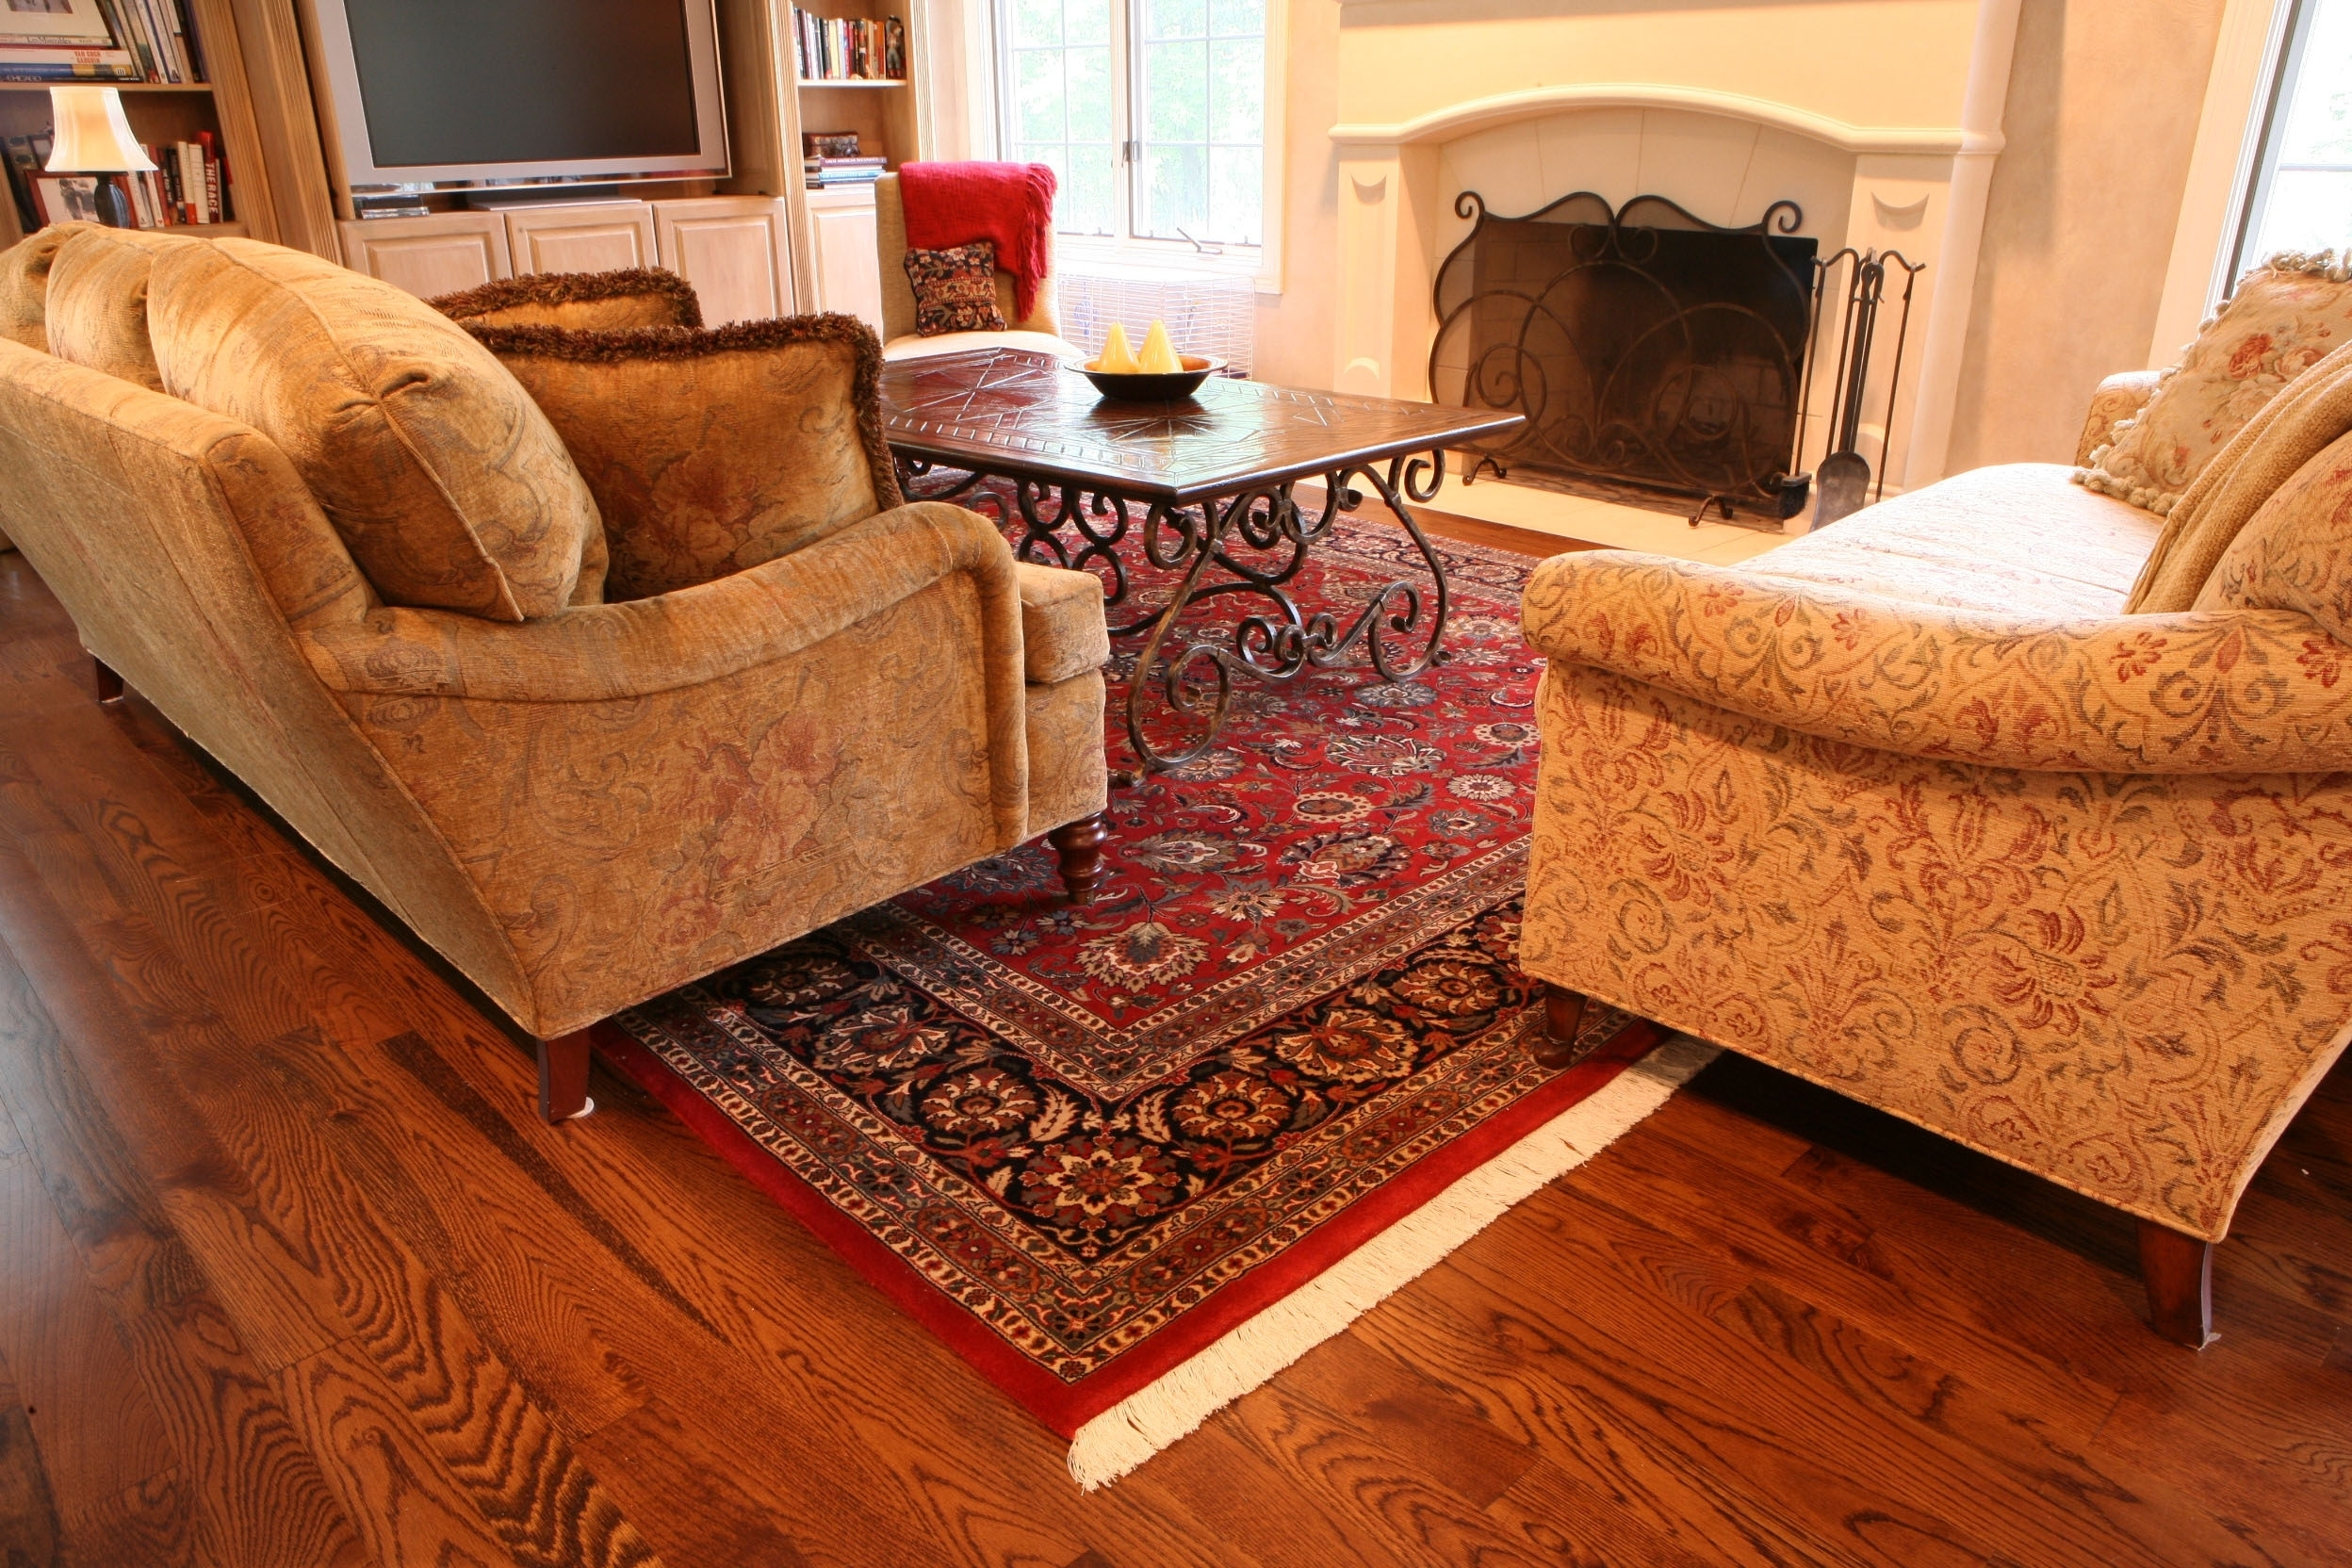 Red Oriental Rug Living Room Rugs Wool Small Throw Rugs Manual 09 Intended For Small Red Rugs (Image 6 of 15)